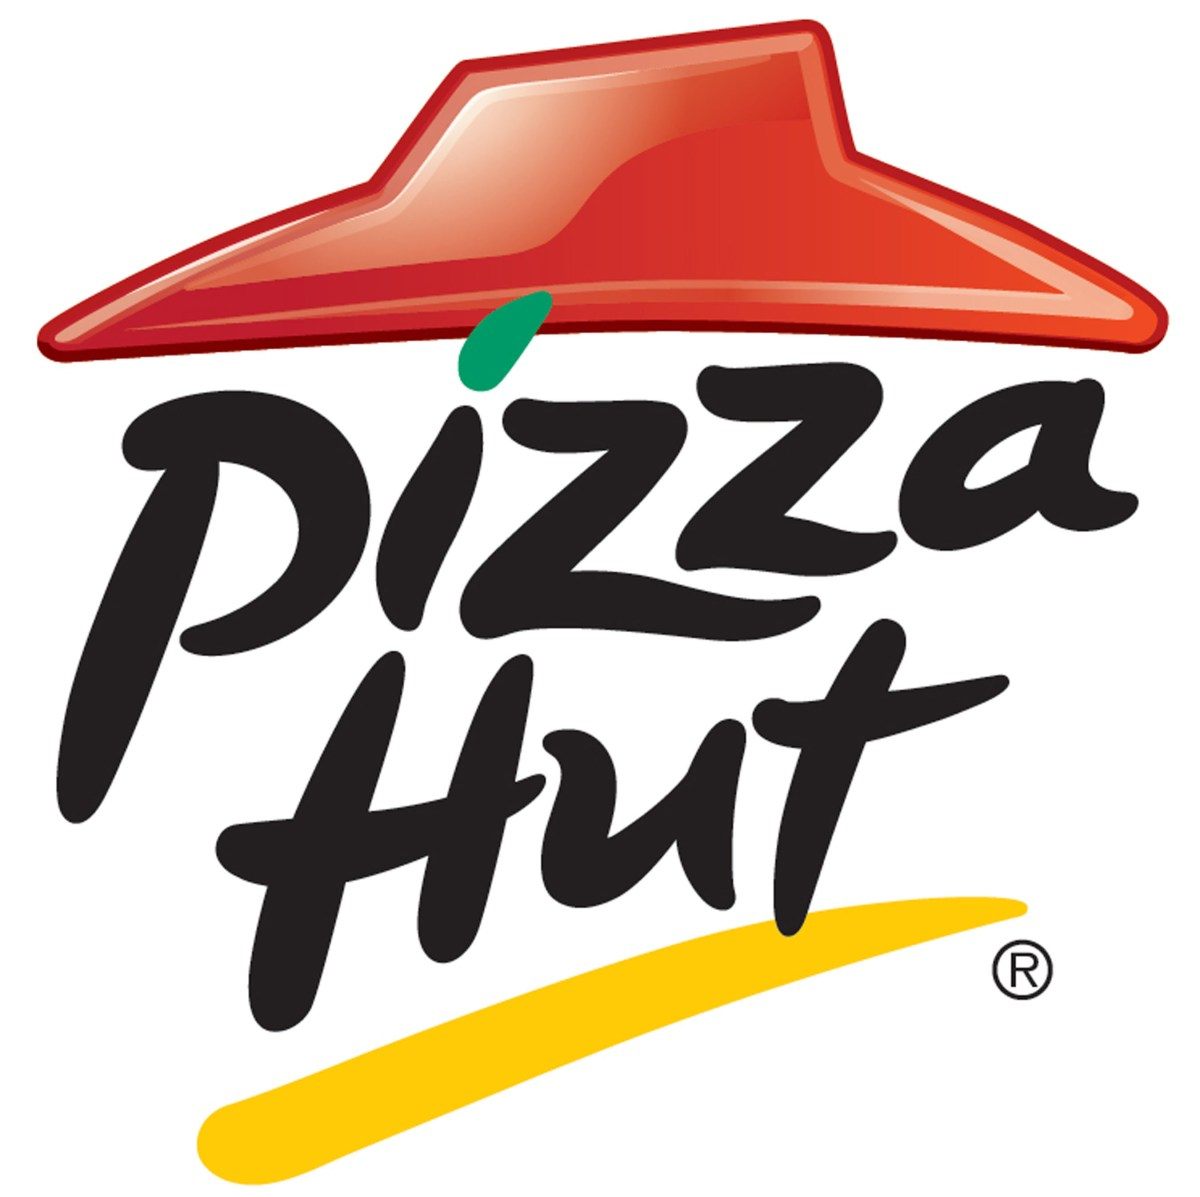 Promociones Pizza Hut el salvador